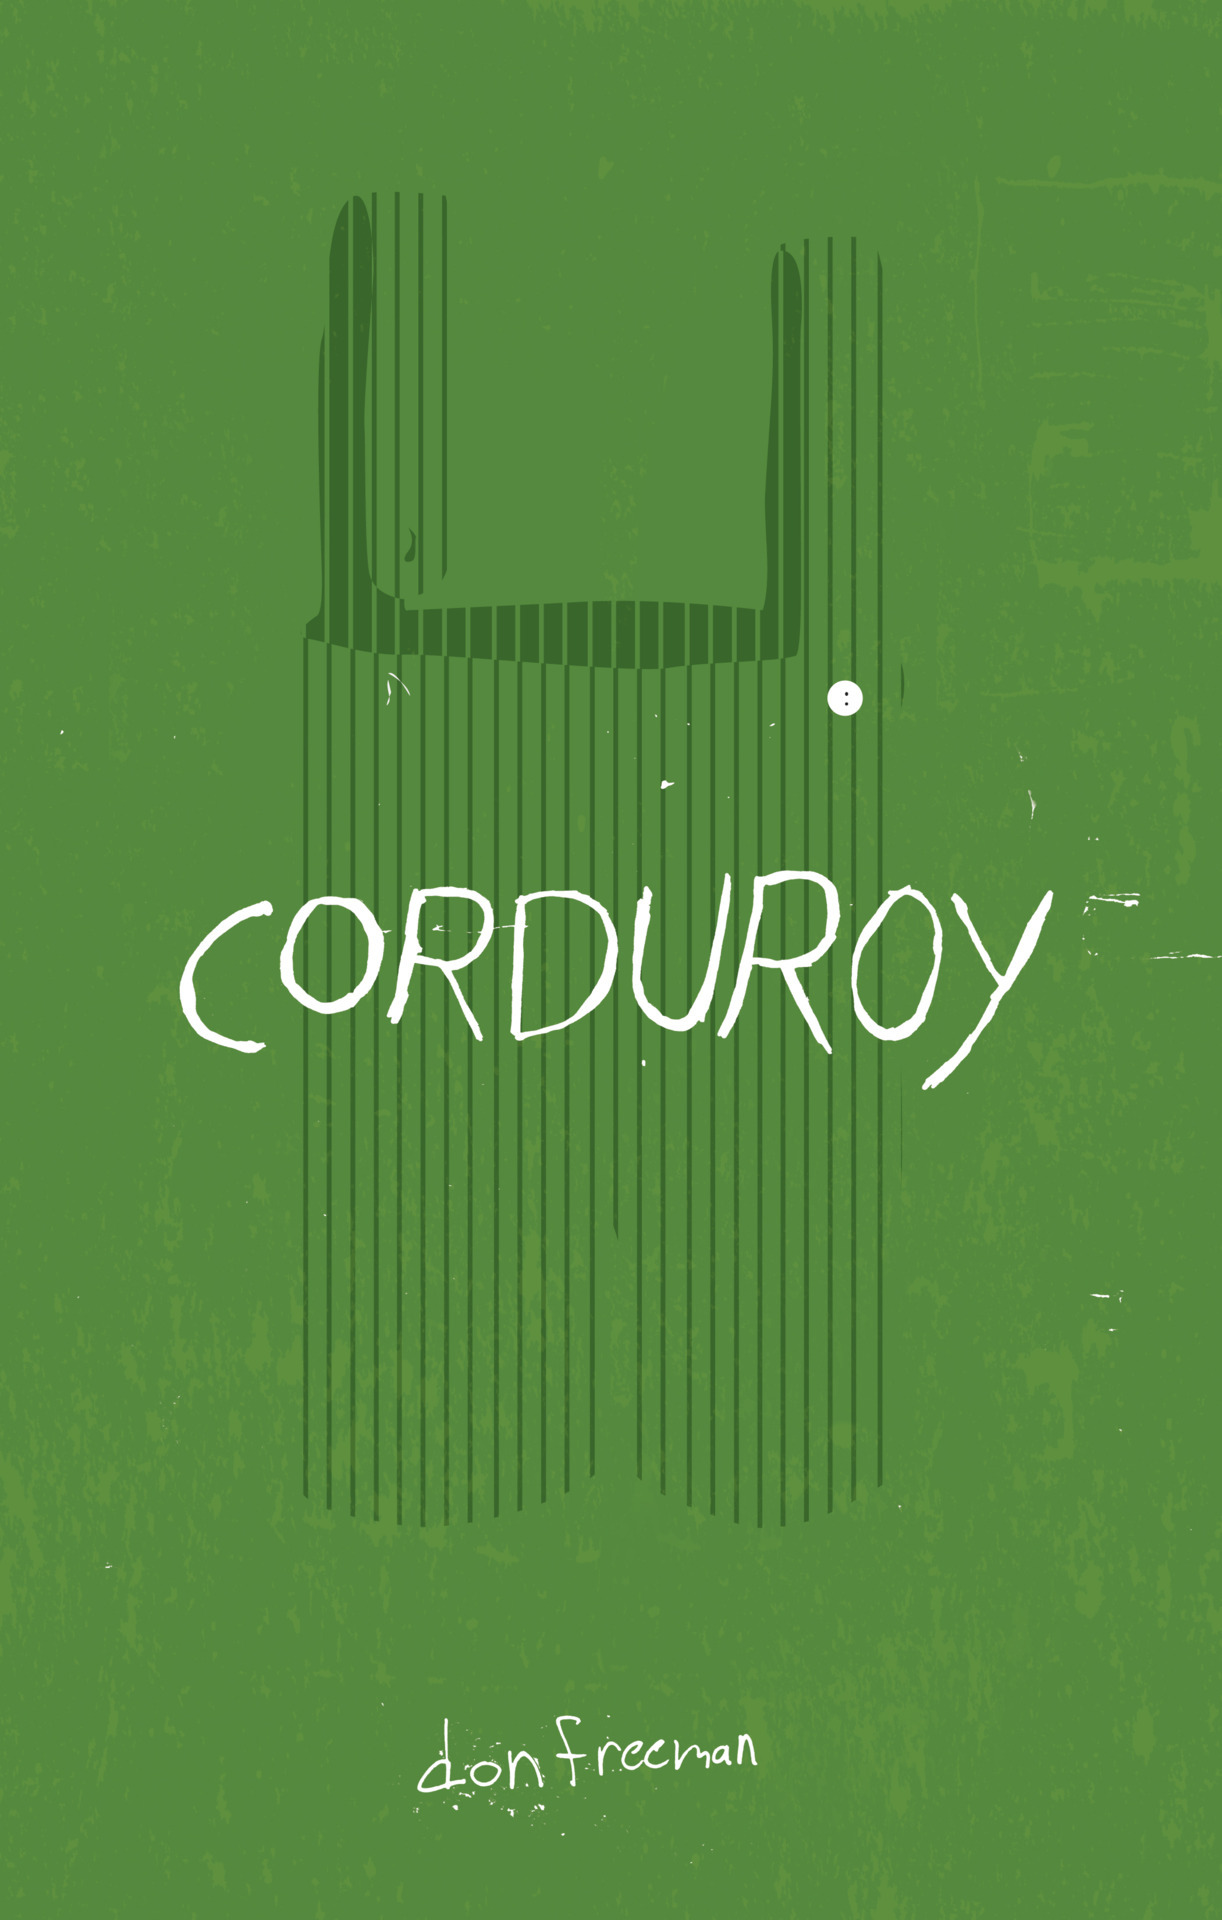 judgeabookcover: Corduroy by Don Freeman Book Cover Re-Design #12 Who doesn't love Corduroy? Buy the high quality art print over at society6.